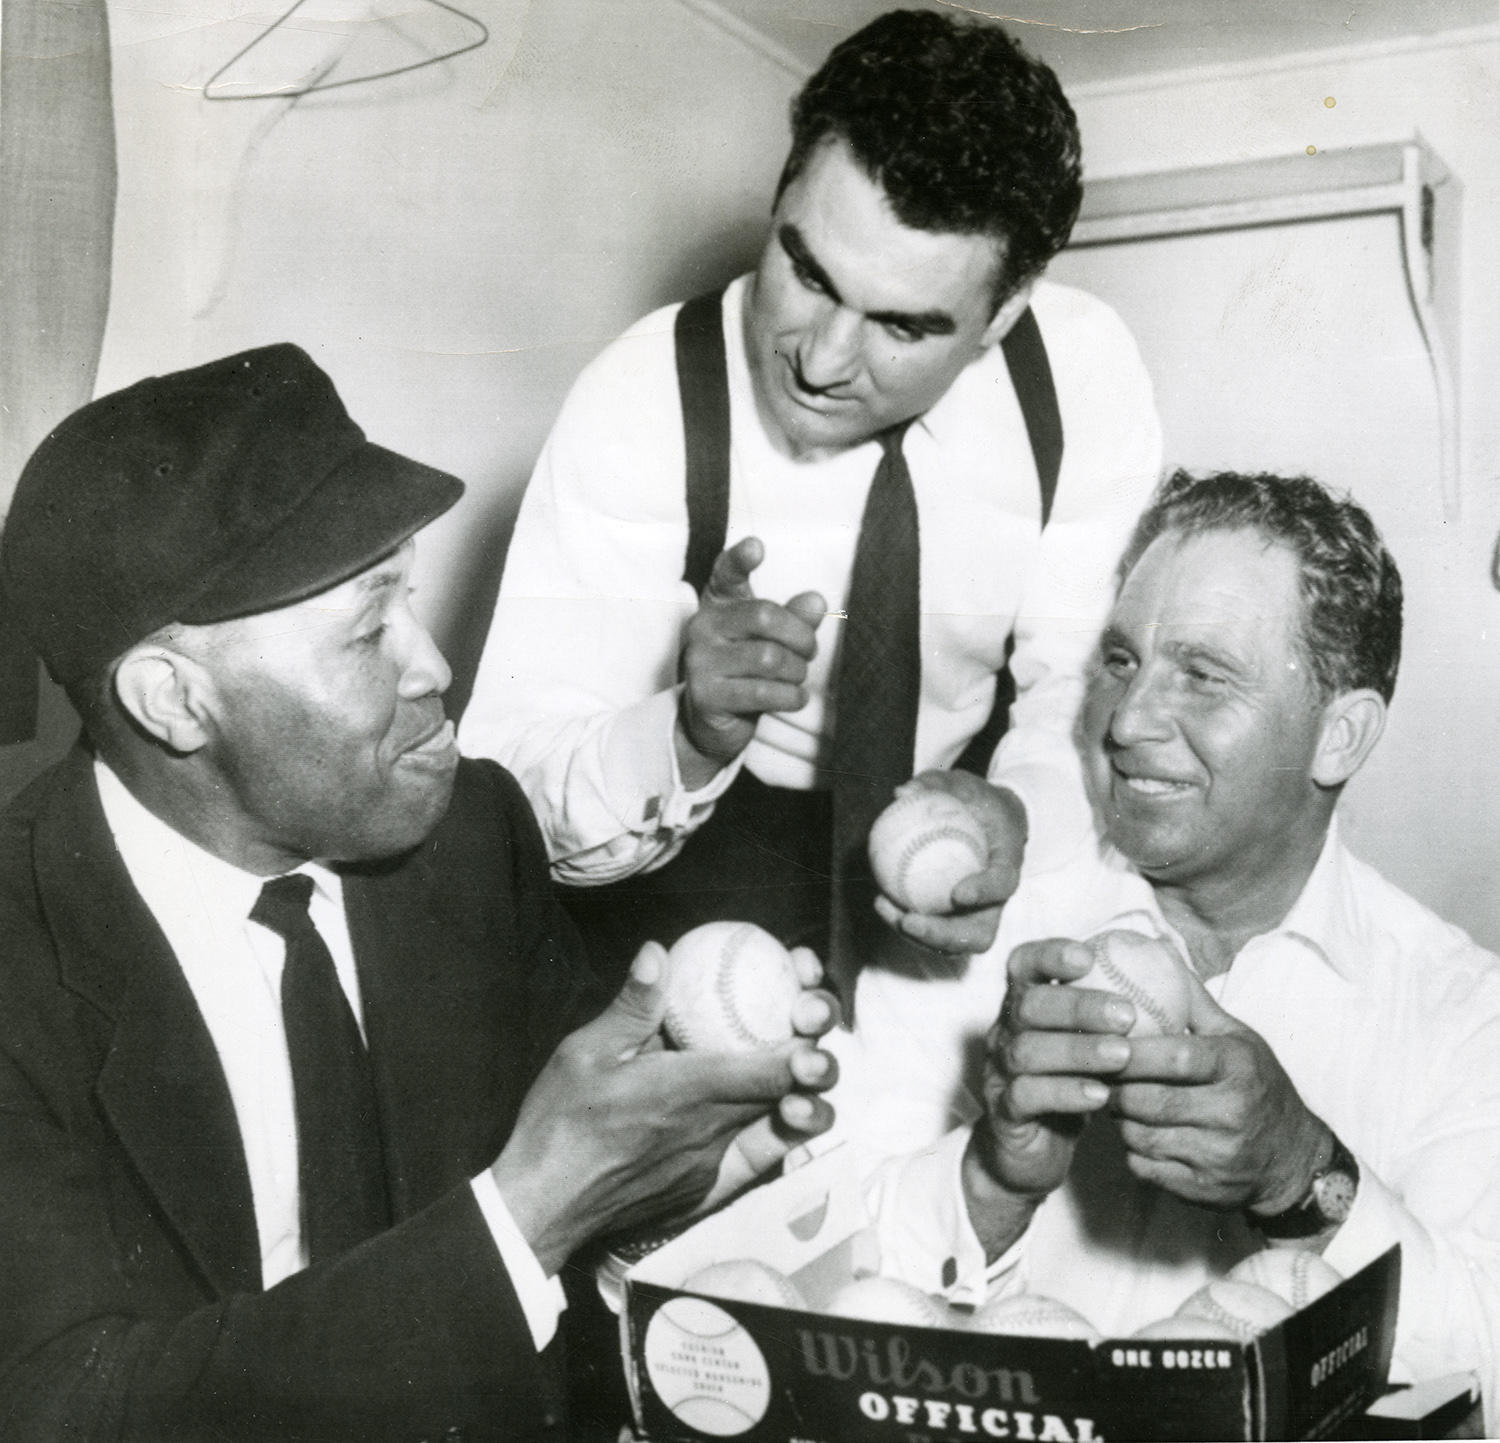 "Cece Carlucci (center) was a mentor for Emmett Ashford (left) while he was working in the Pacific Coast League. Mickey Hanich (right) also worked as an umpire in the PCL. <a href=""http://collection.baseballhall.org/islandora/object/islandora%3A299332"">PASTIME</a> (National Baseball Hall of Fame and Museum)"